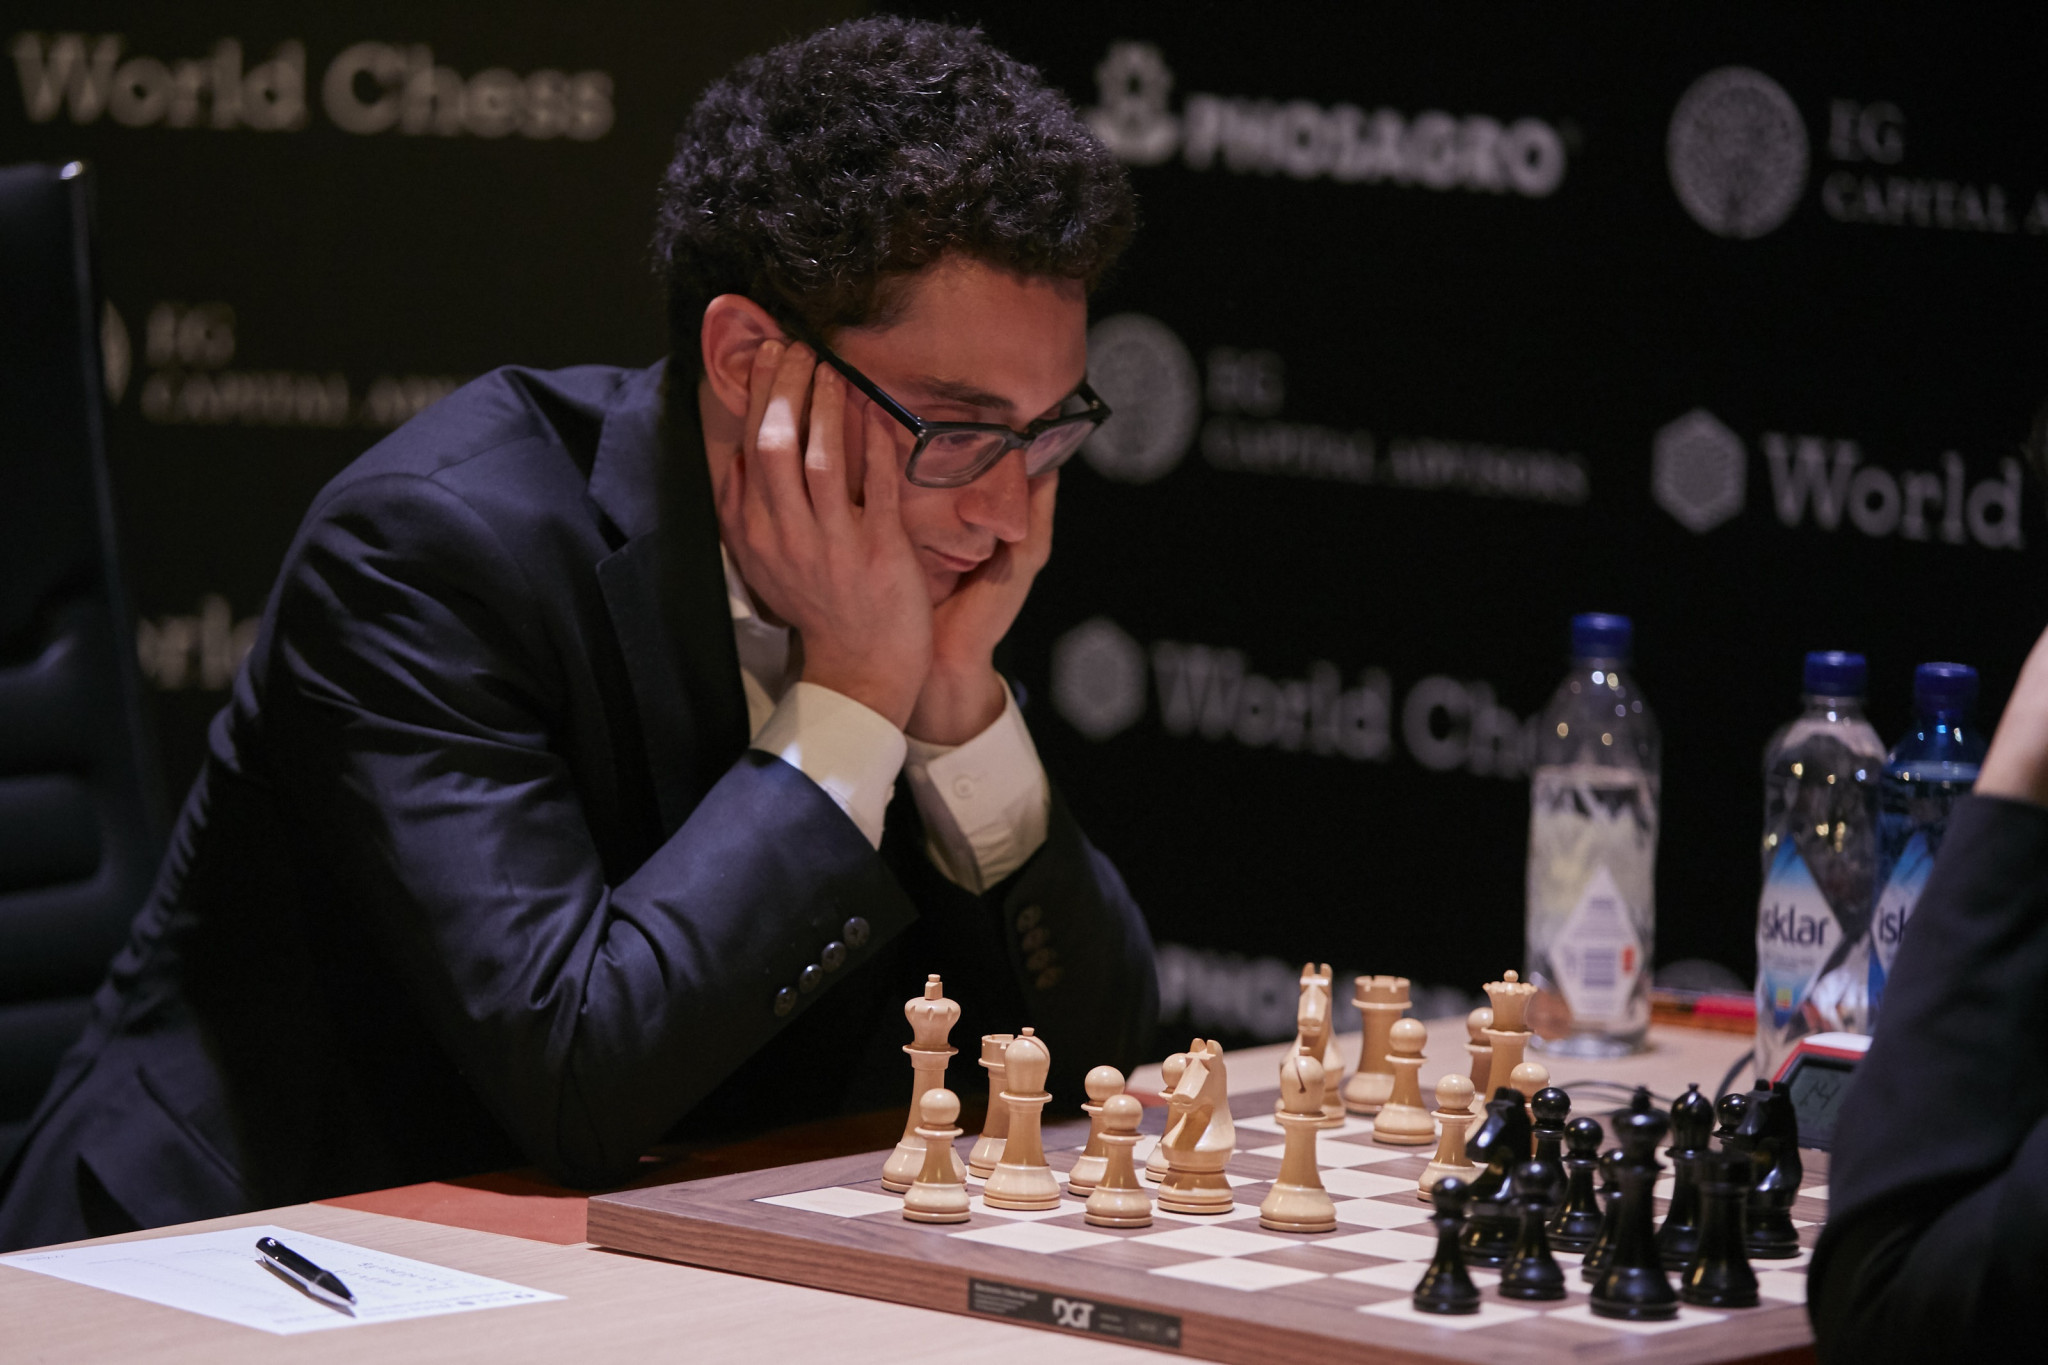 The United States' Fabiano Caruana will compete for Magnus Carlsen's World Chess Championship title in November after clinching victory at the Candidates Tournament in Berlin ©Getty Images